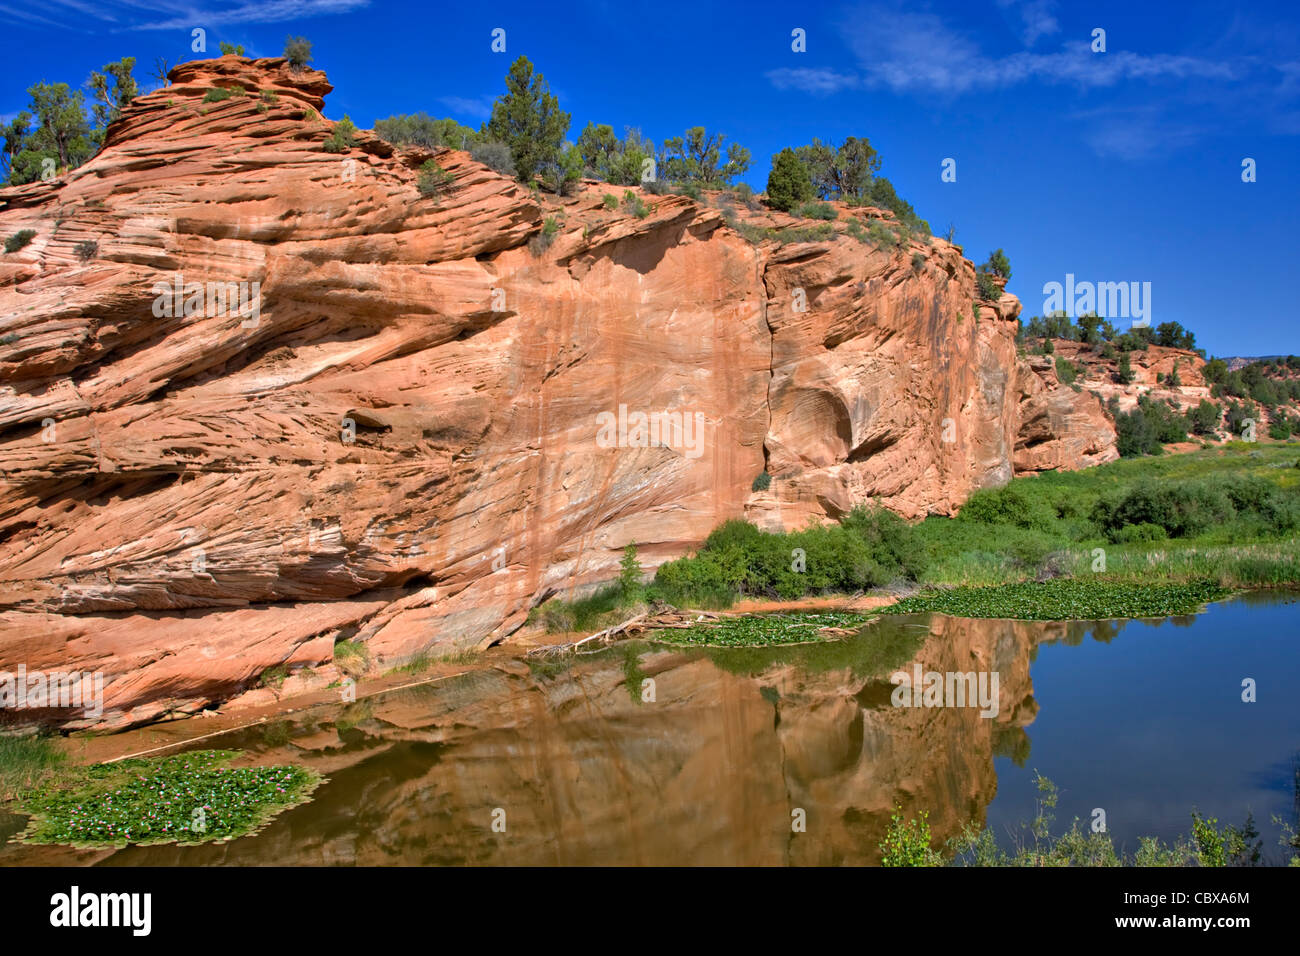 A red sandstone rock formation is reflected in the still waters of a pond on the Kaibab Plateau, Grand Canyon National - Stock Image